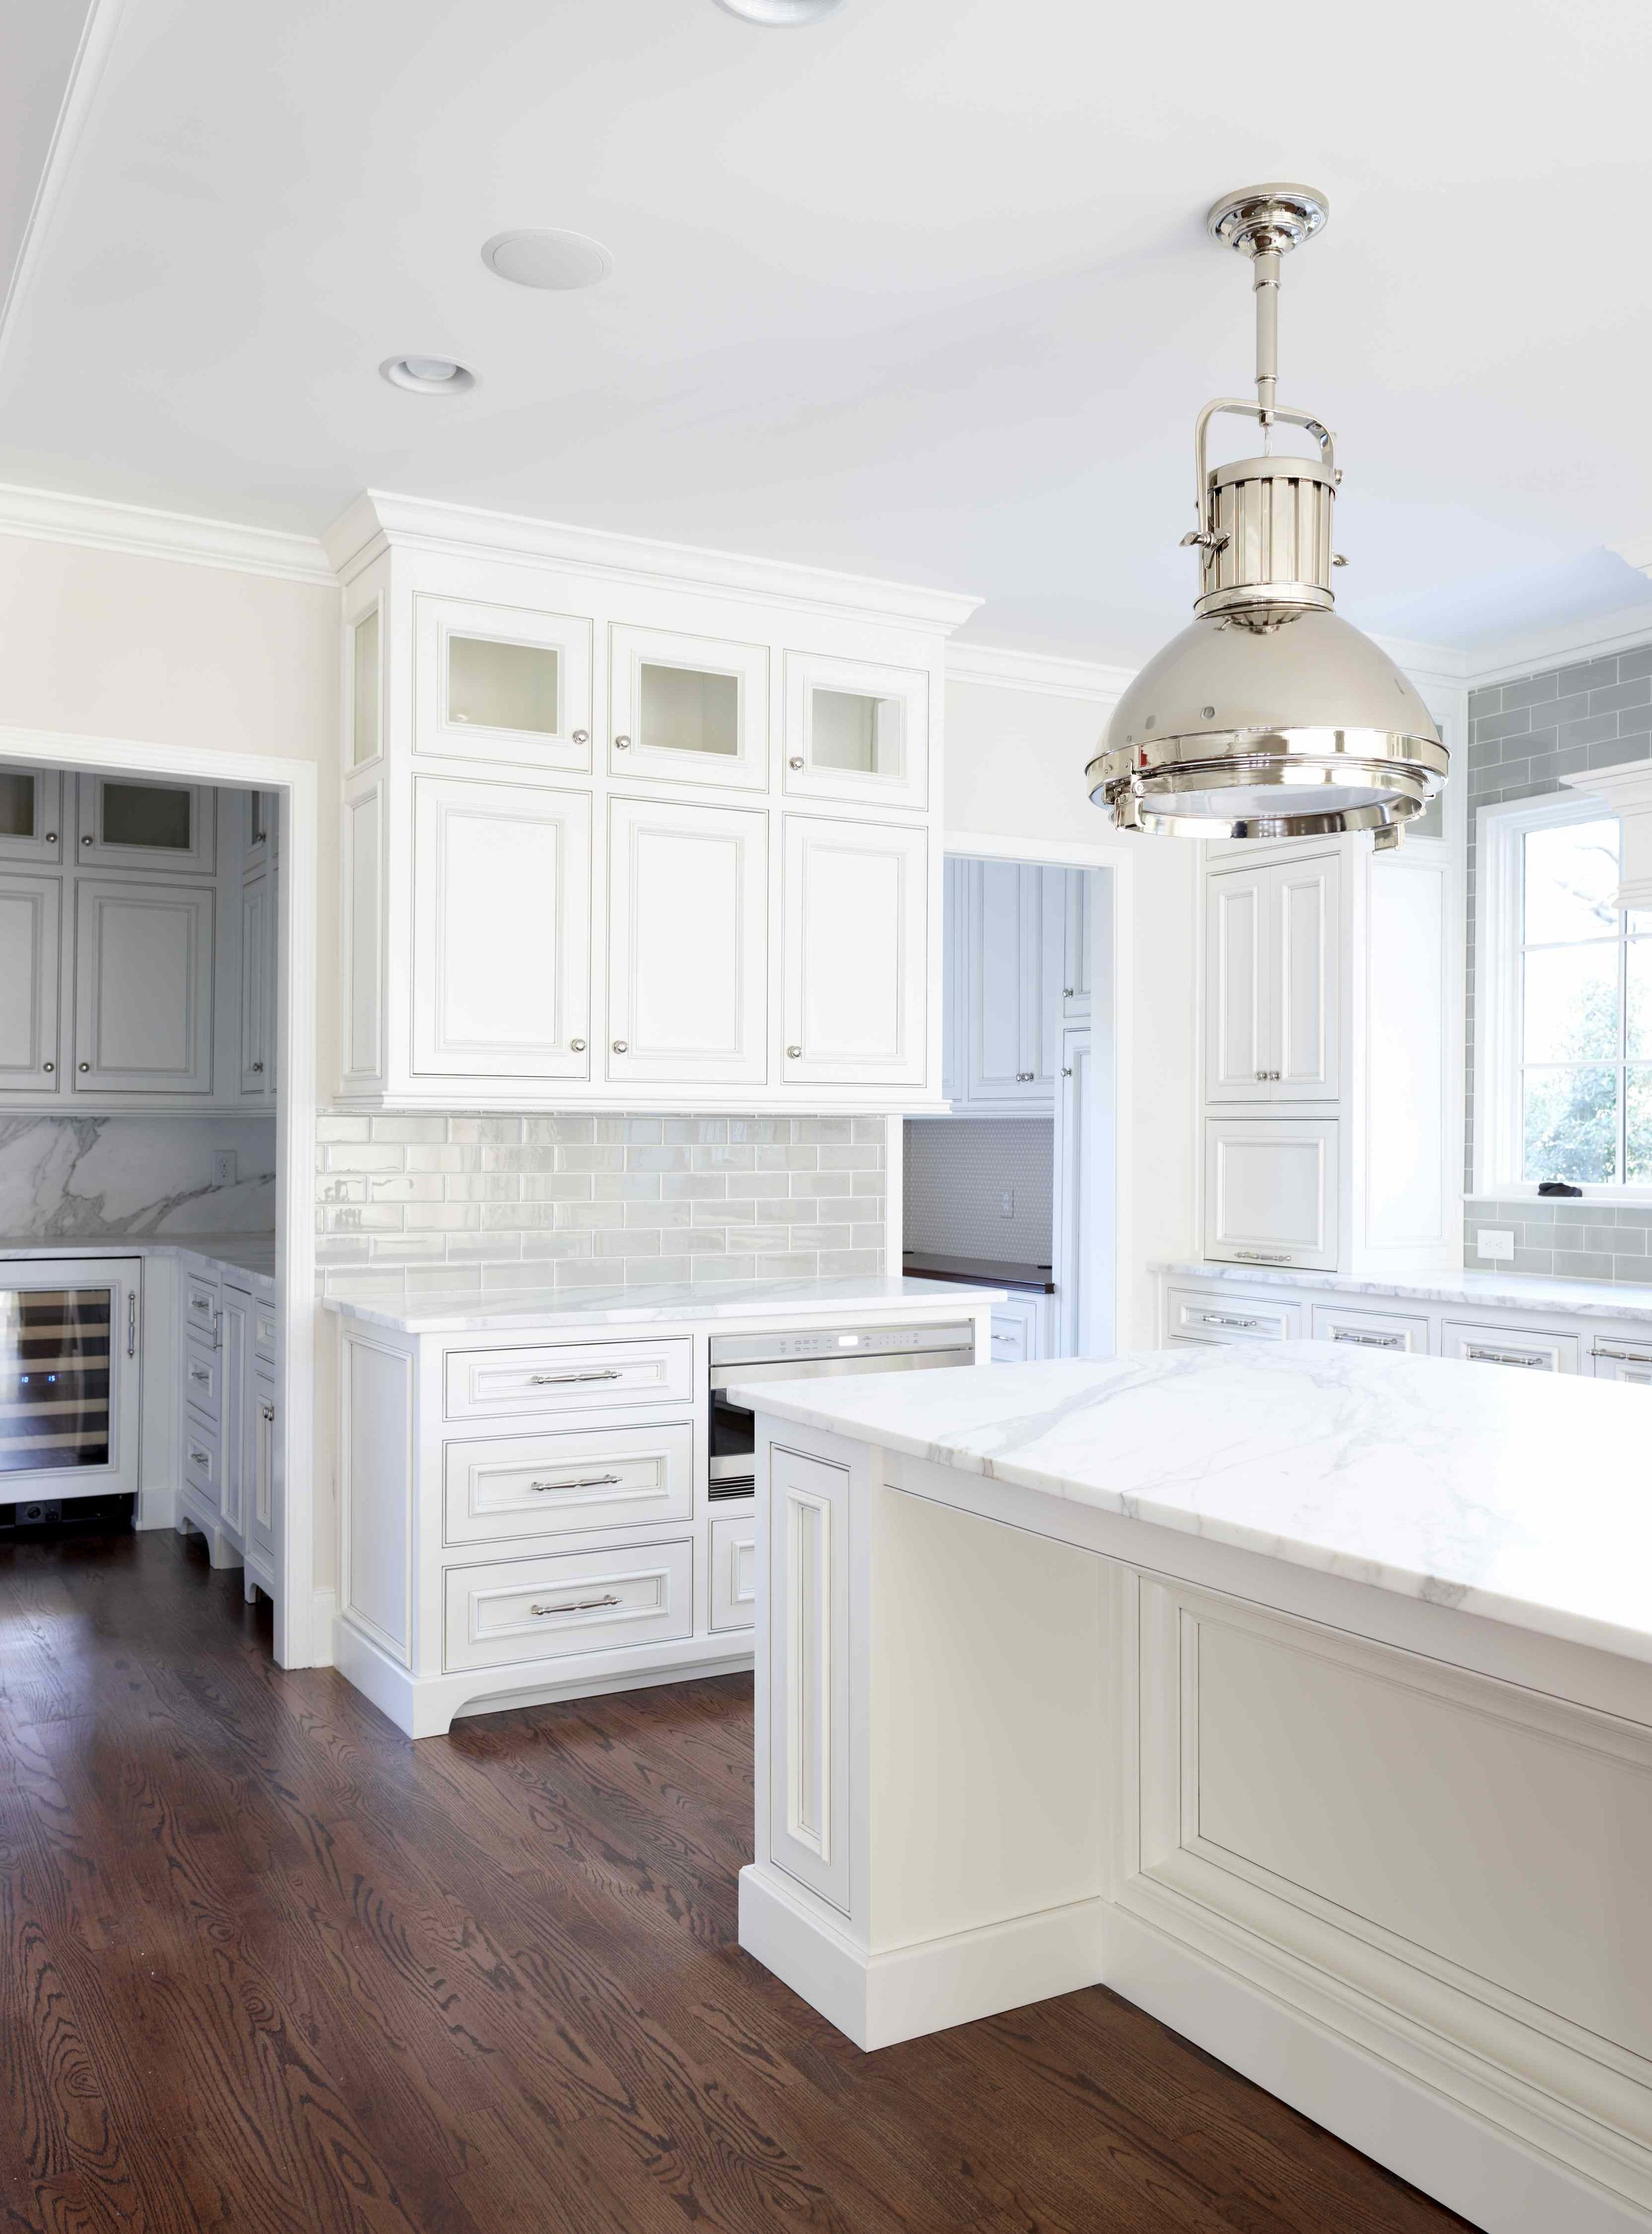 There's two pantries in this one. Is it excessive or is it really well planned? I'd love to ask the owners what they think. | designed by  L.Kae Interiors